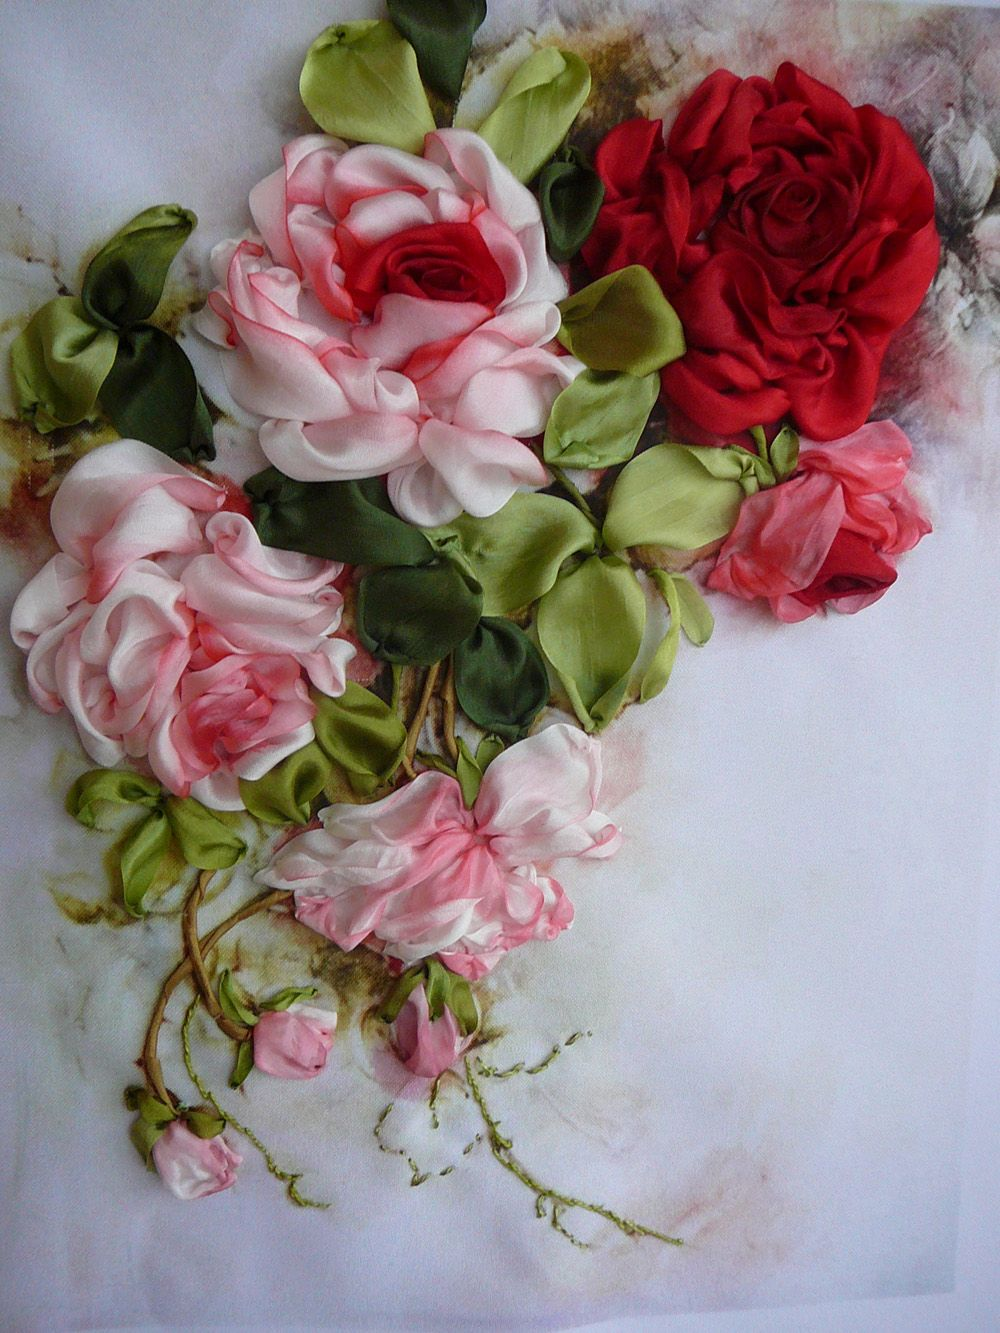 Small masterpieces: flowers from satin ribbons, made by own hands